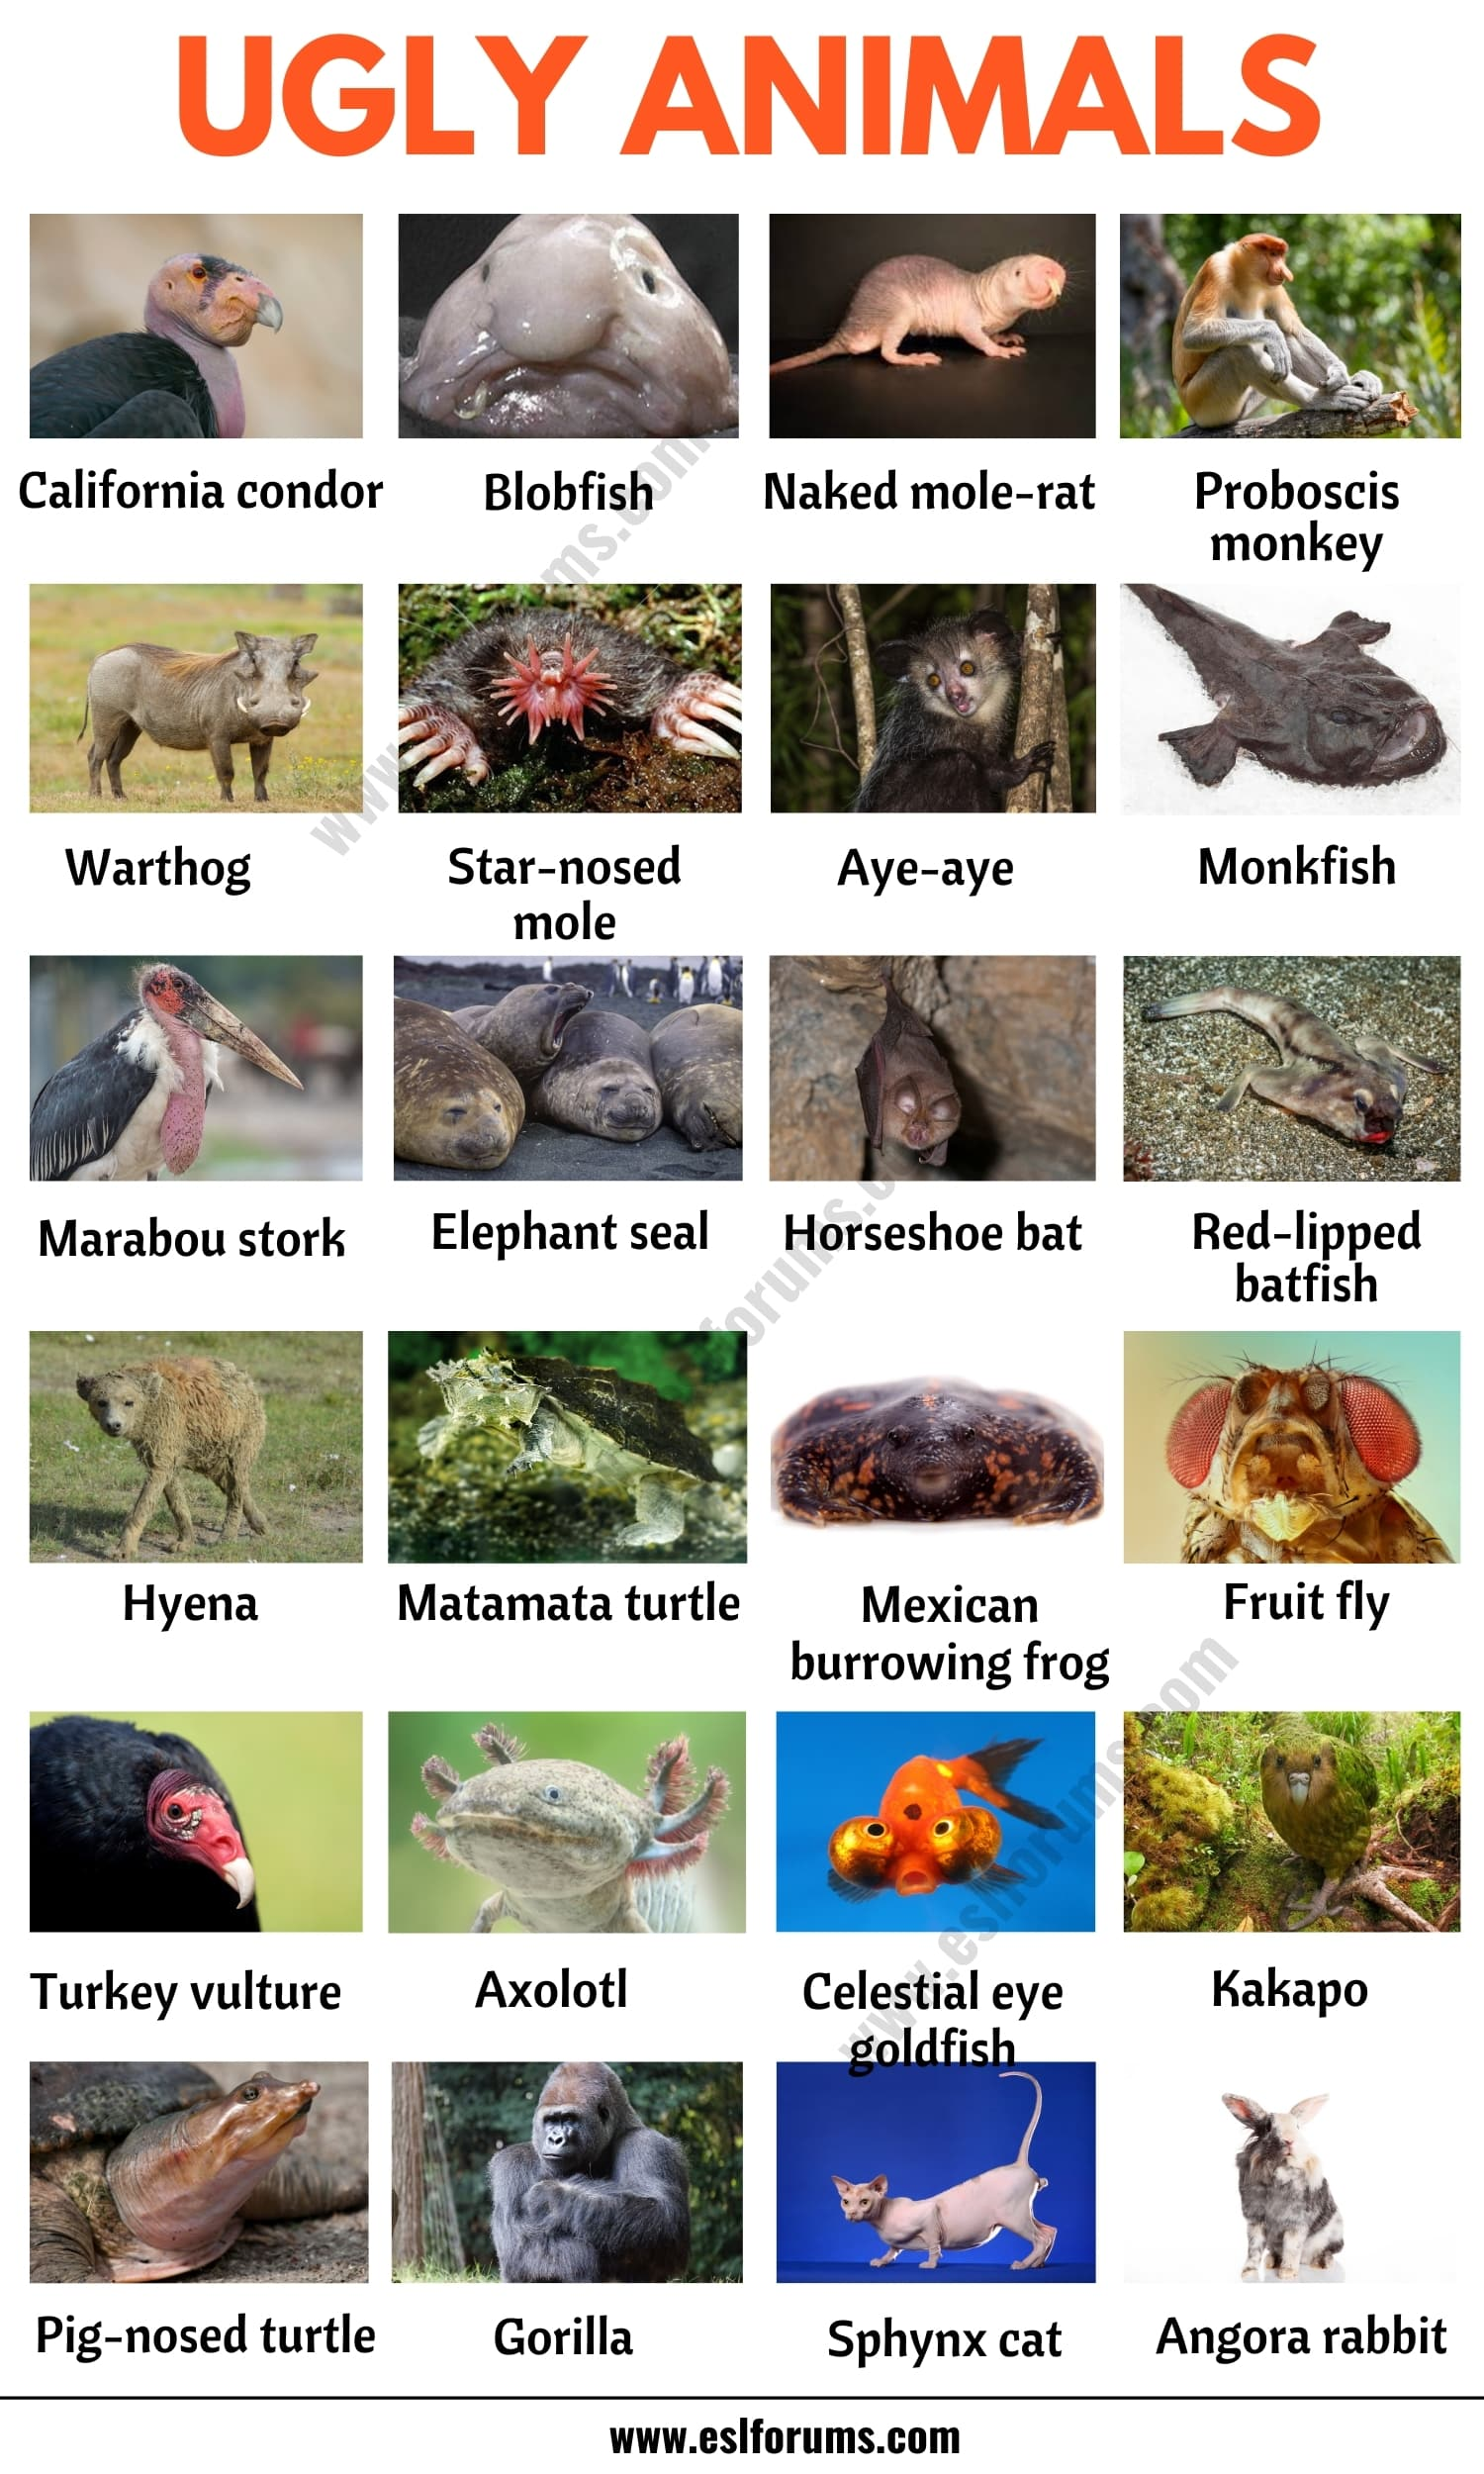 Ugly Animals: List of 20 Ugly (but Cute) Animals in English with ESL Picture!